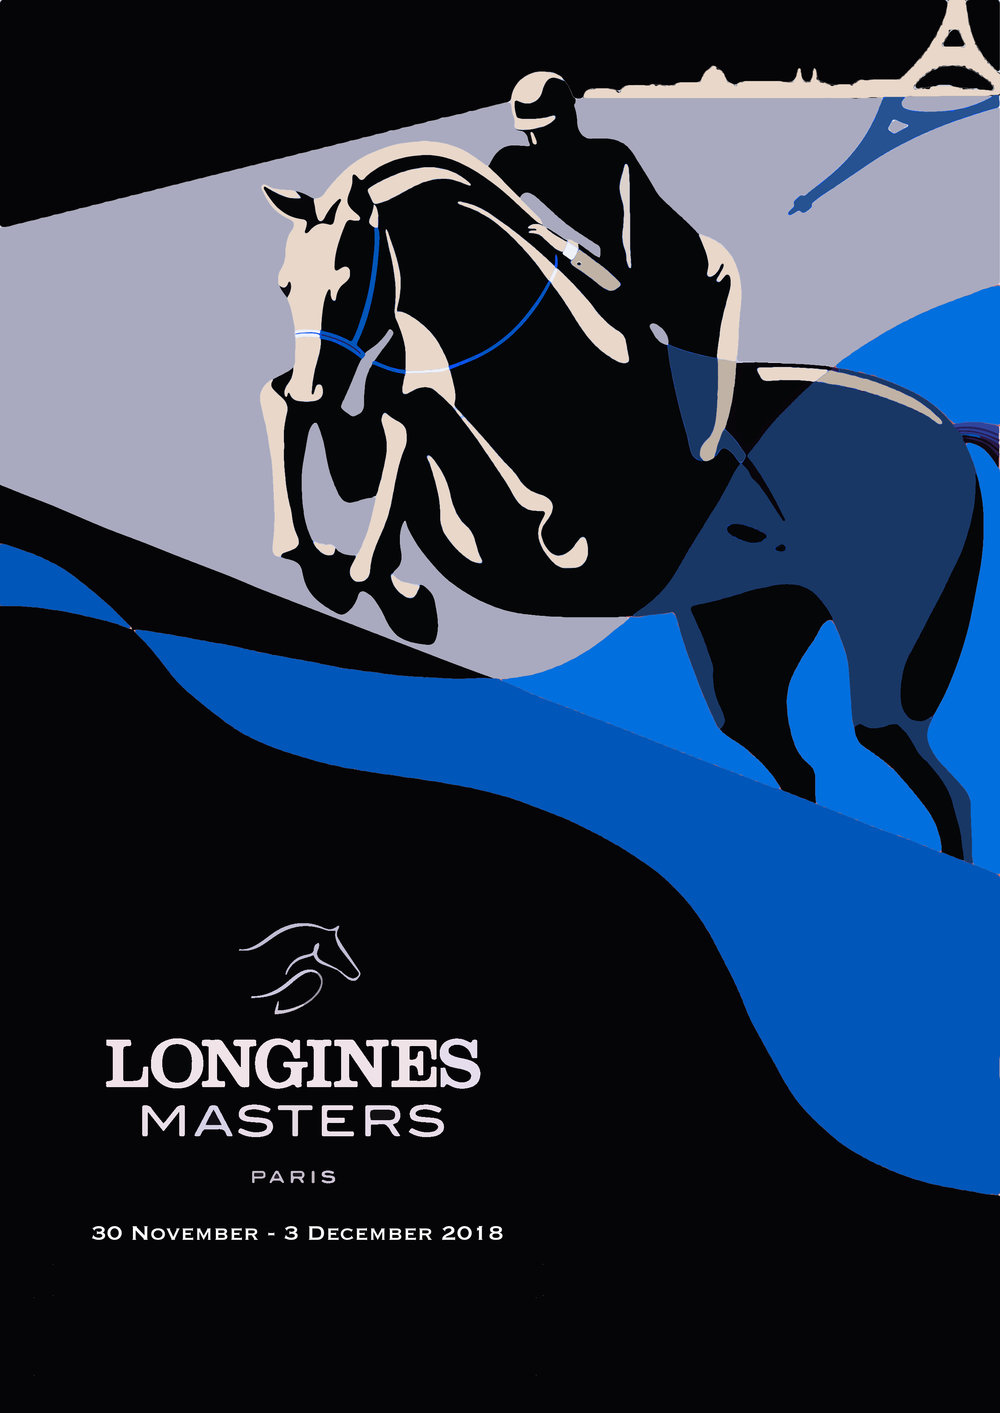 longines draft alternative version nighttime.jpg